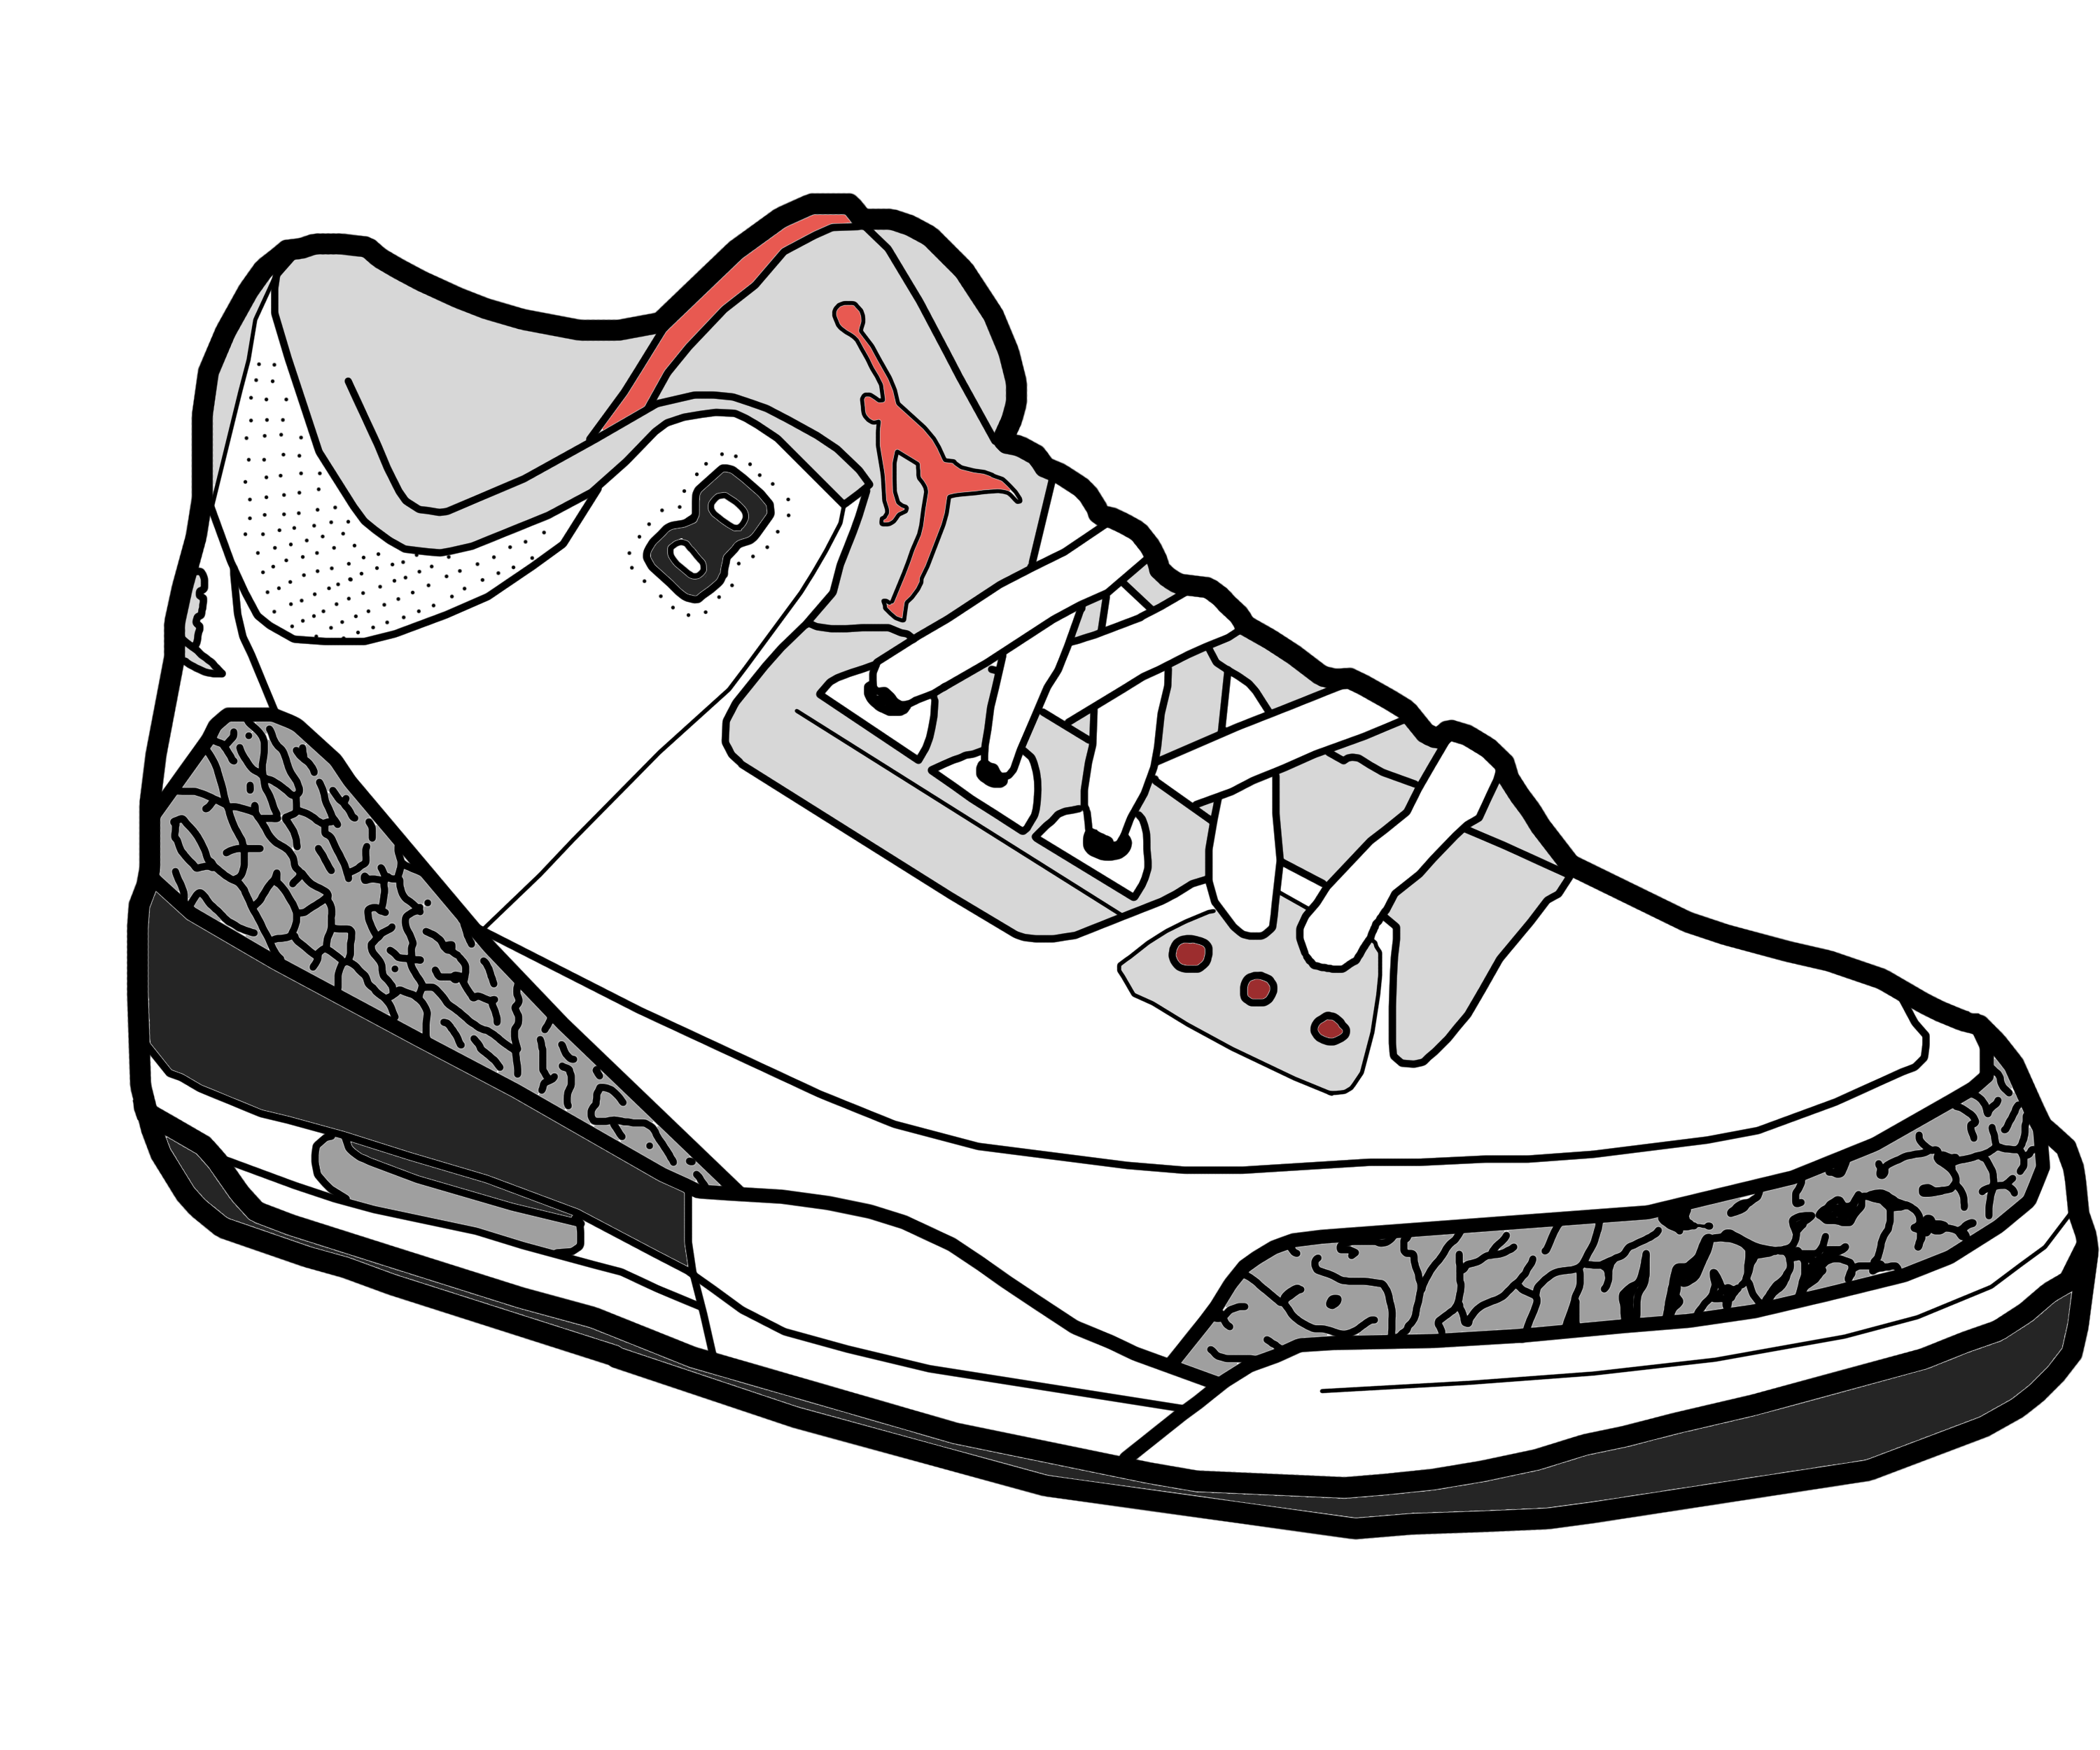 Basketball shoes black and white clipart svg library download Jumpman Air Jordan Shoe Sneakers Clip art - cartoon shoes 3000*2500 ... svg library download